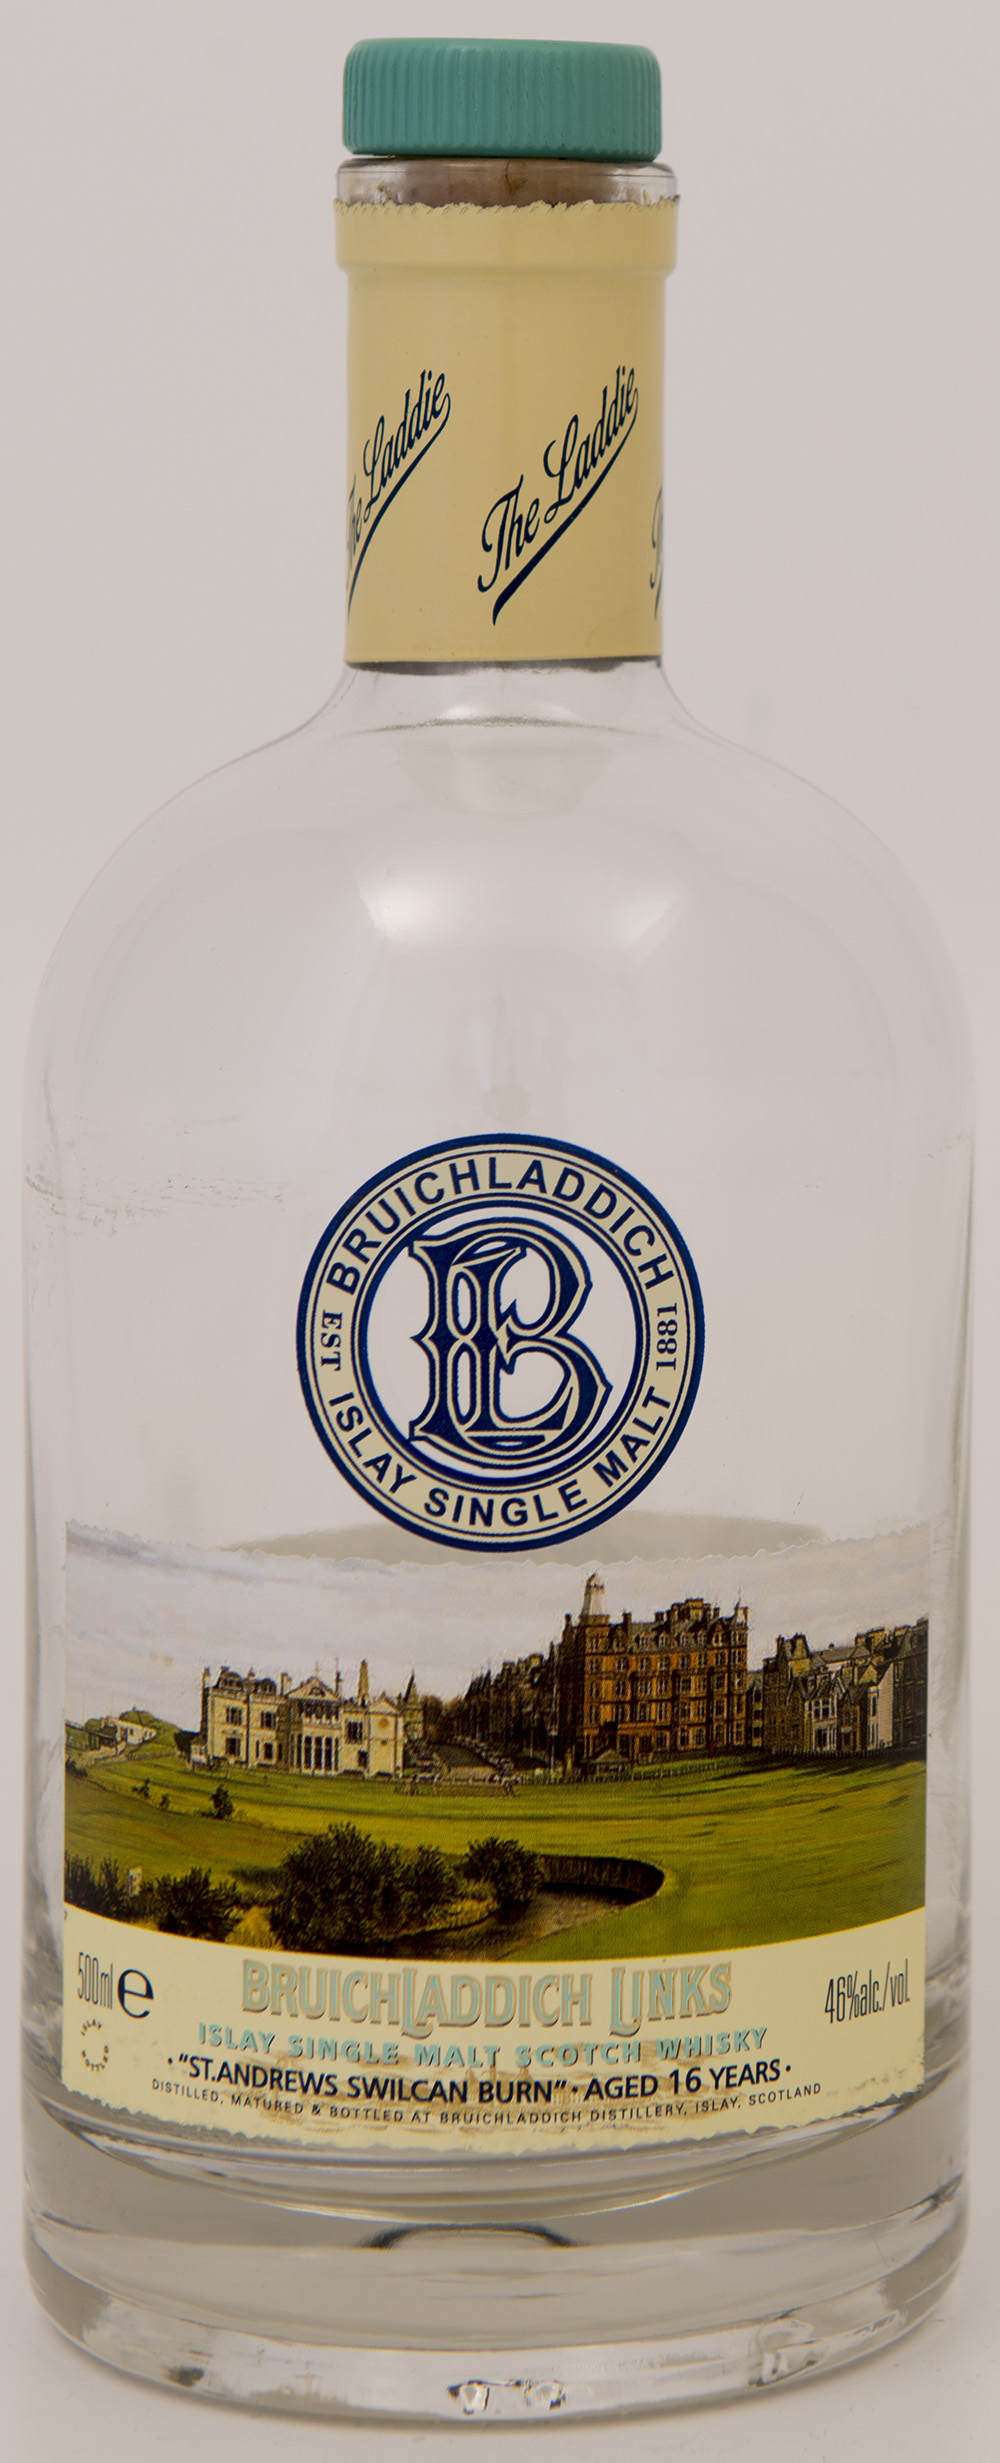 Billede: DSC_3295 - St Andrews Swilcan Burn - bottle front.jpg